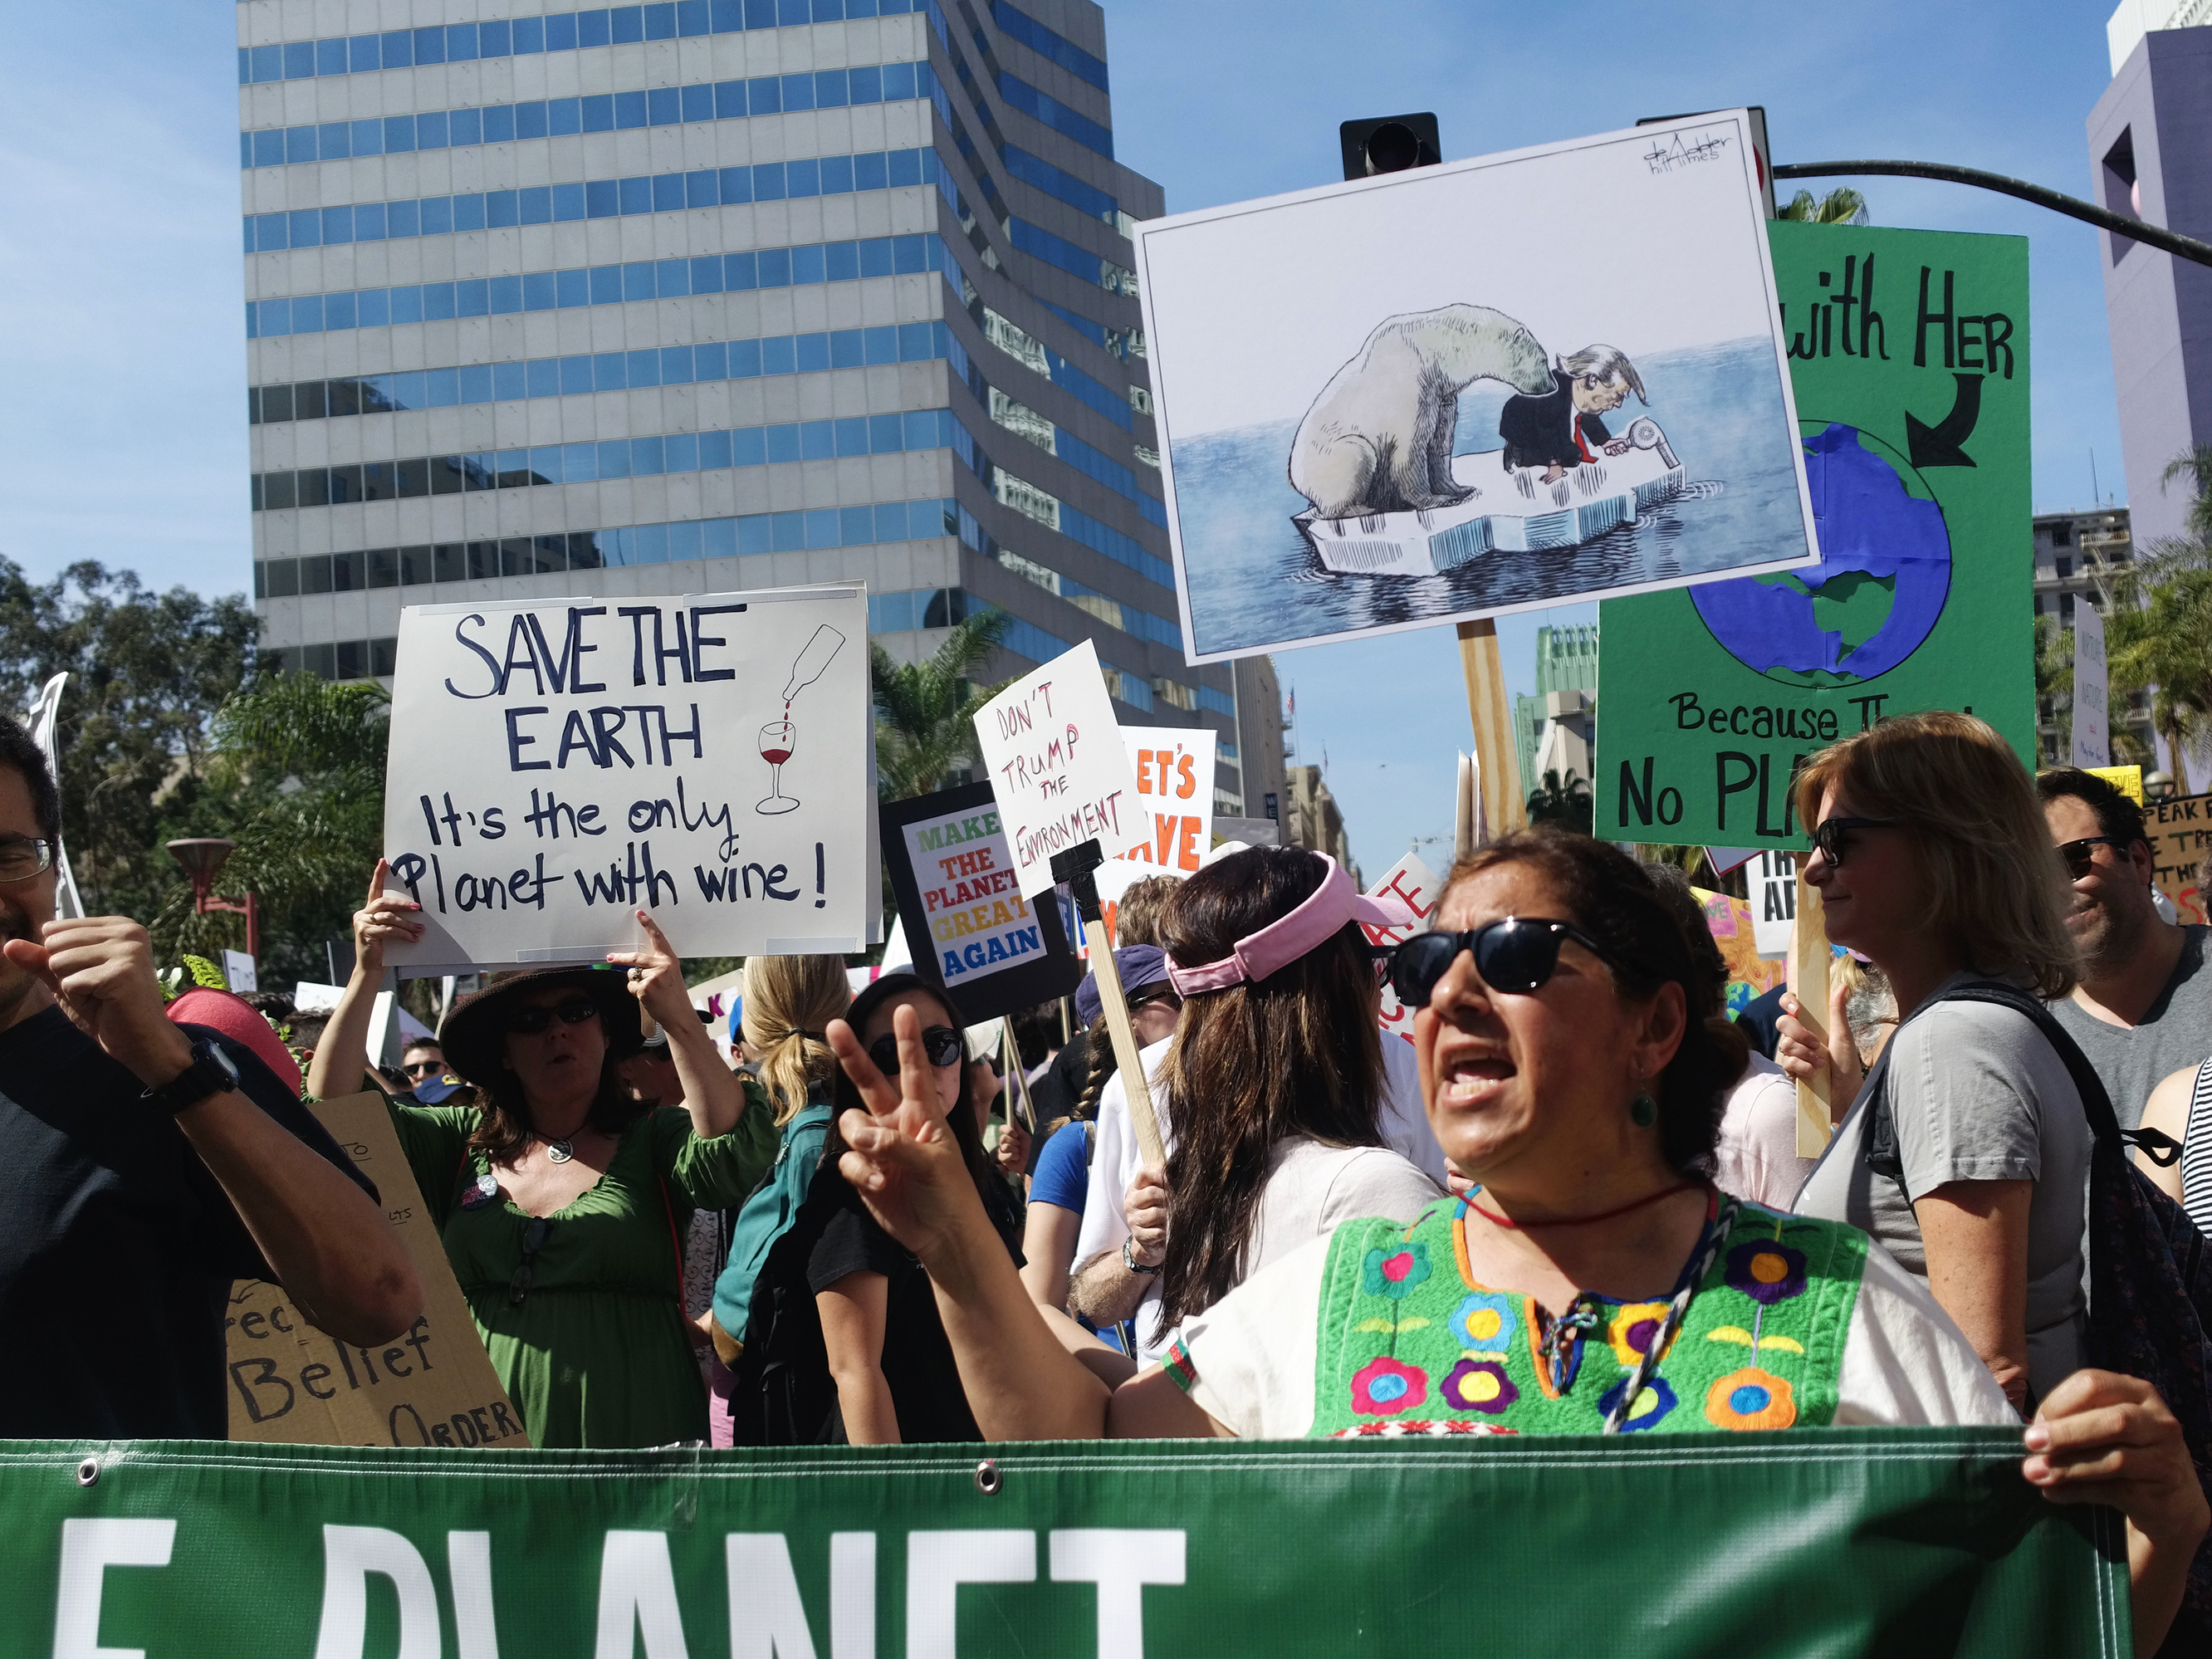 Yolanda Gonzalez, a sixth-grade teacher of Pomona, Calif., demonstrates as part of the March for Science in downtown Los Angeles on Saturday.